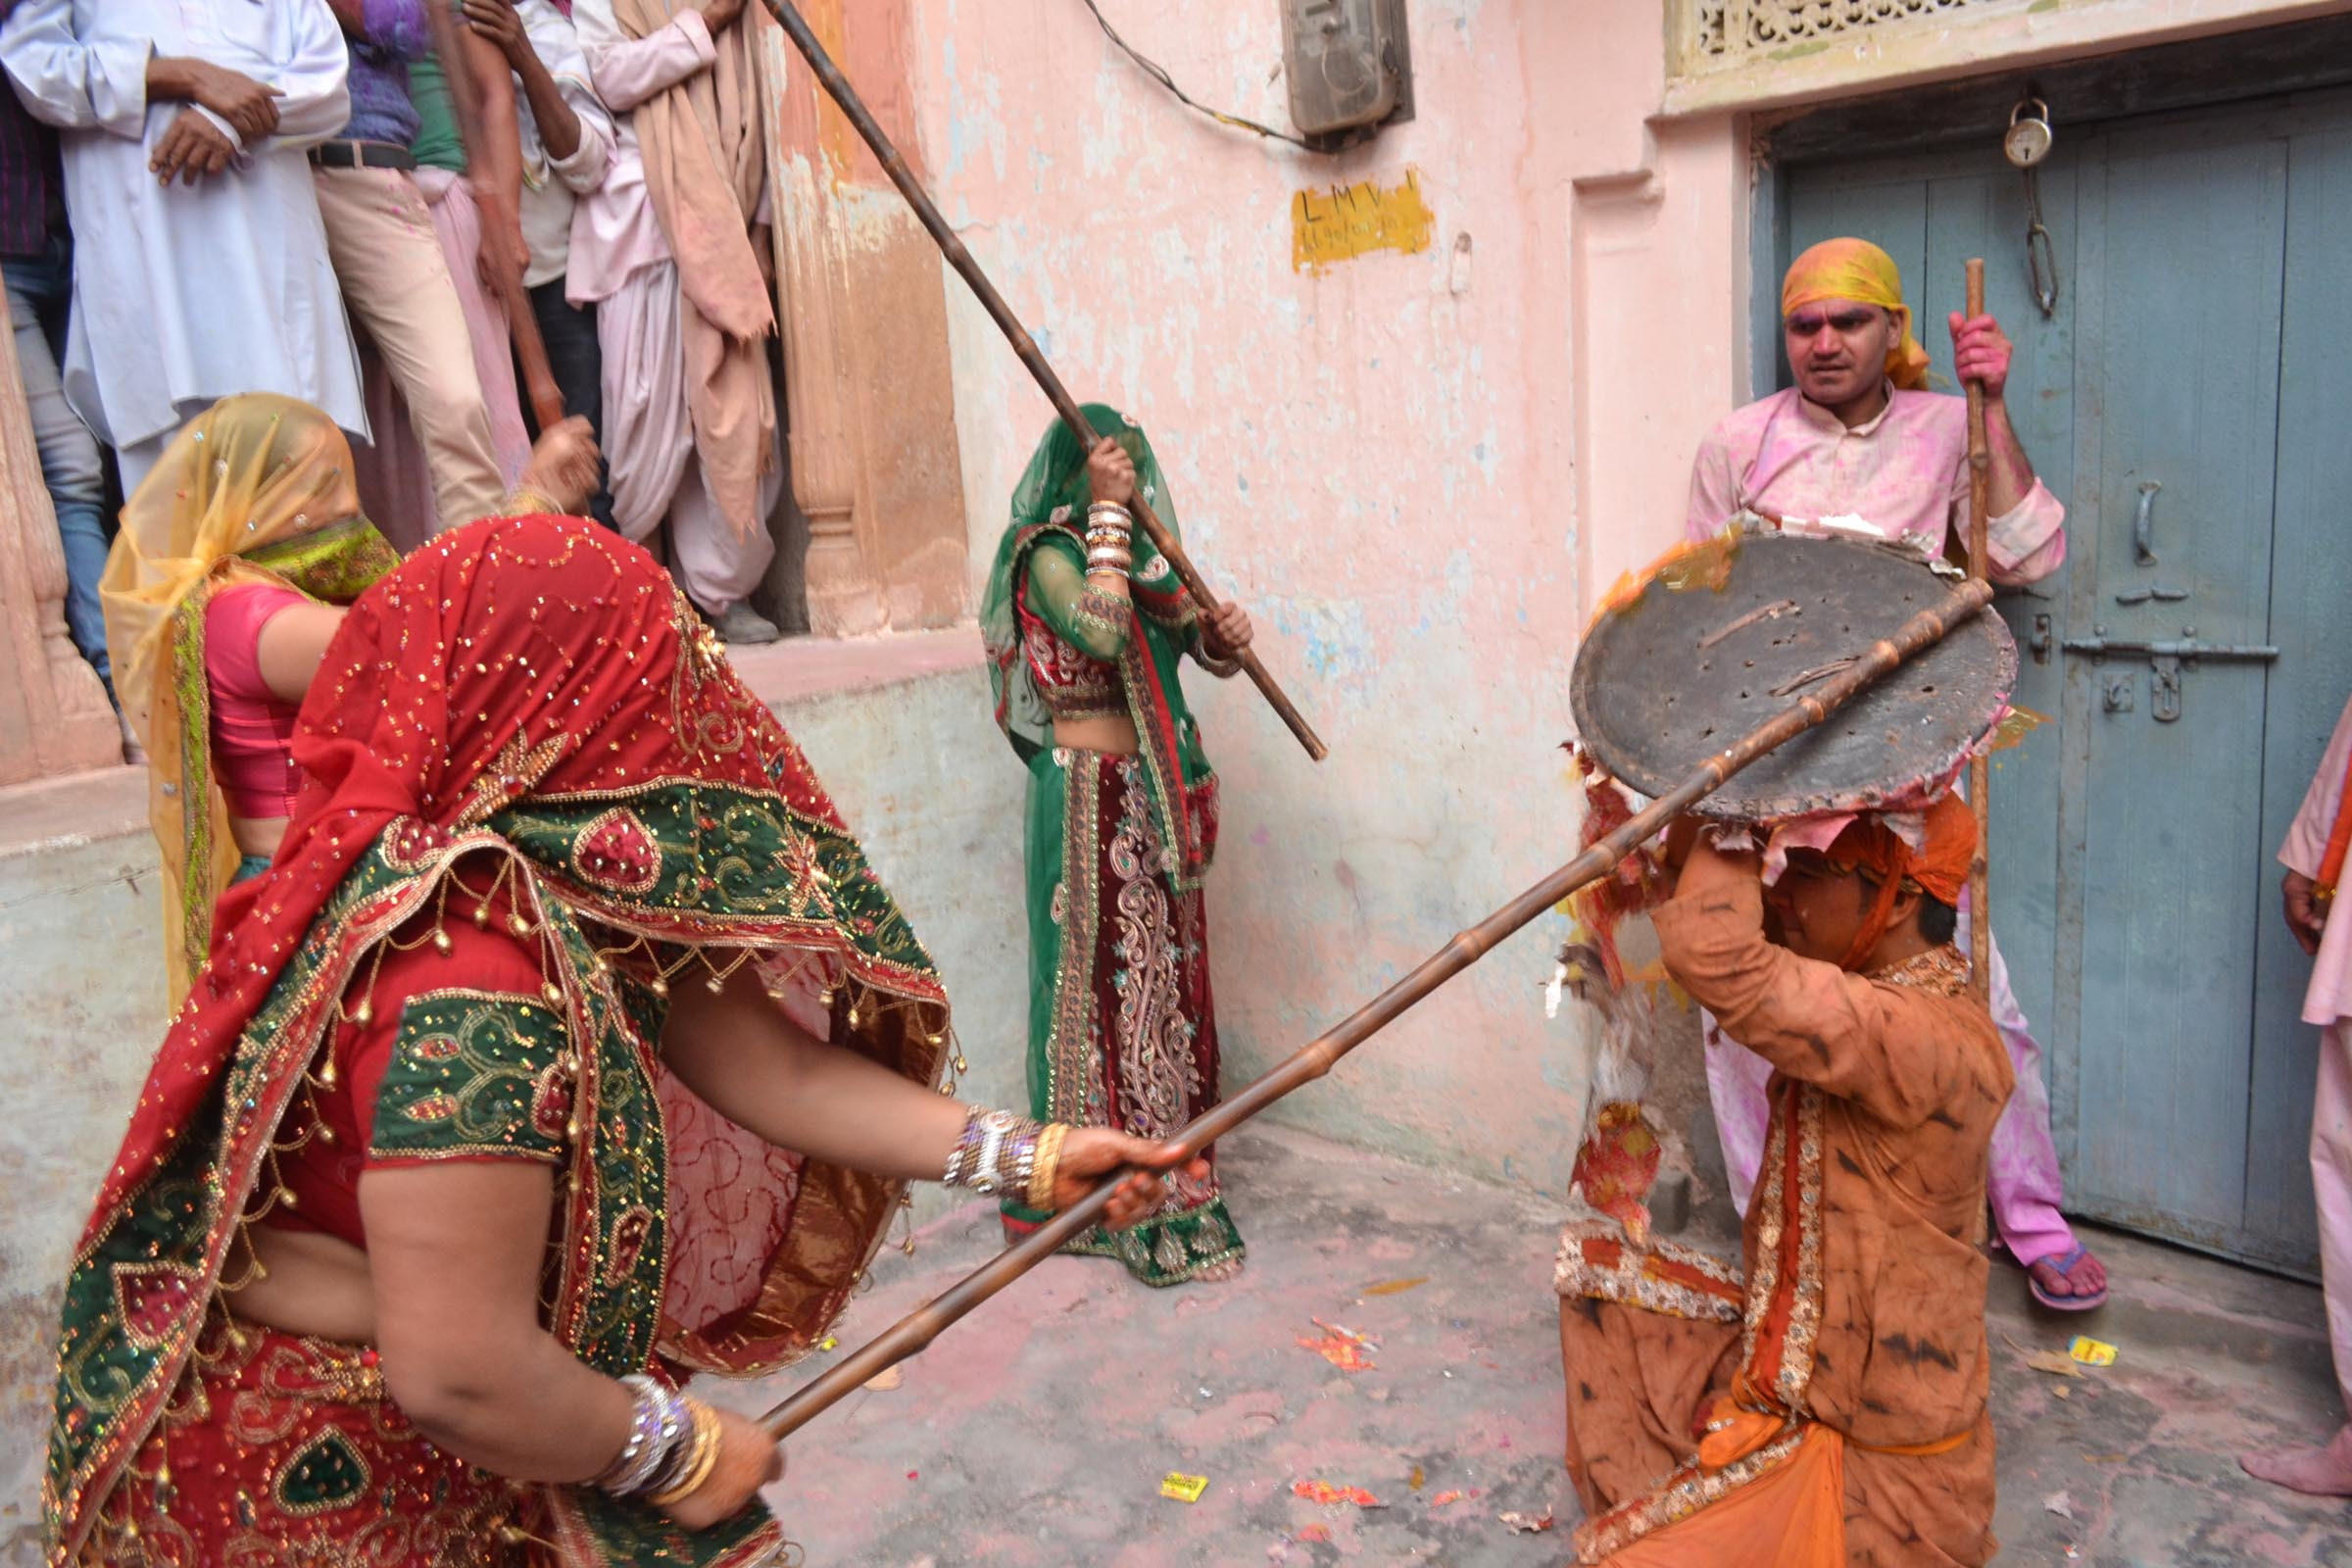 holi 2019 barsana lathmar holi celebration in 2019